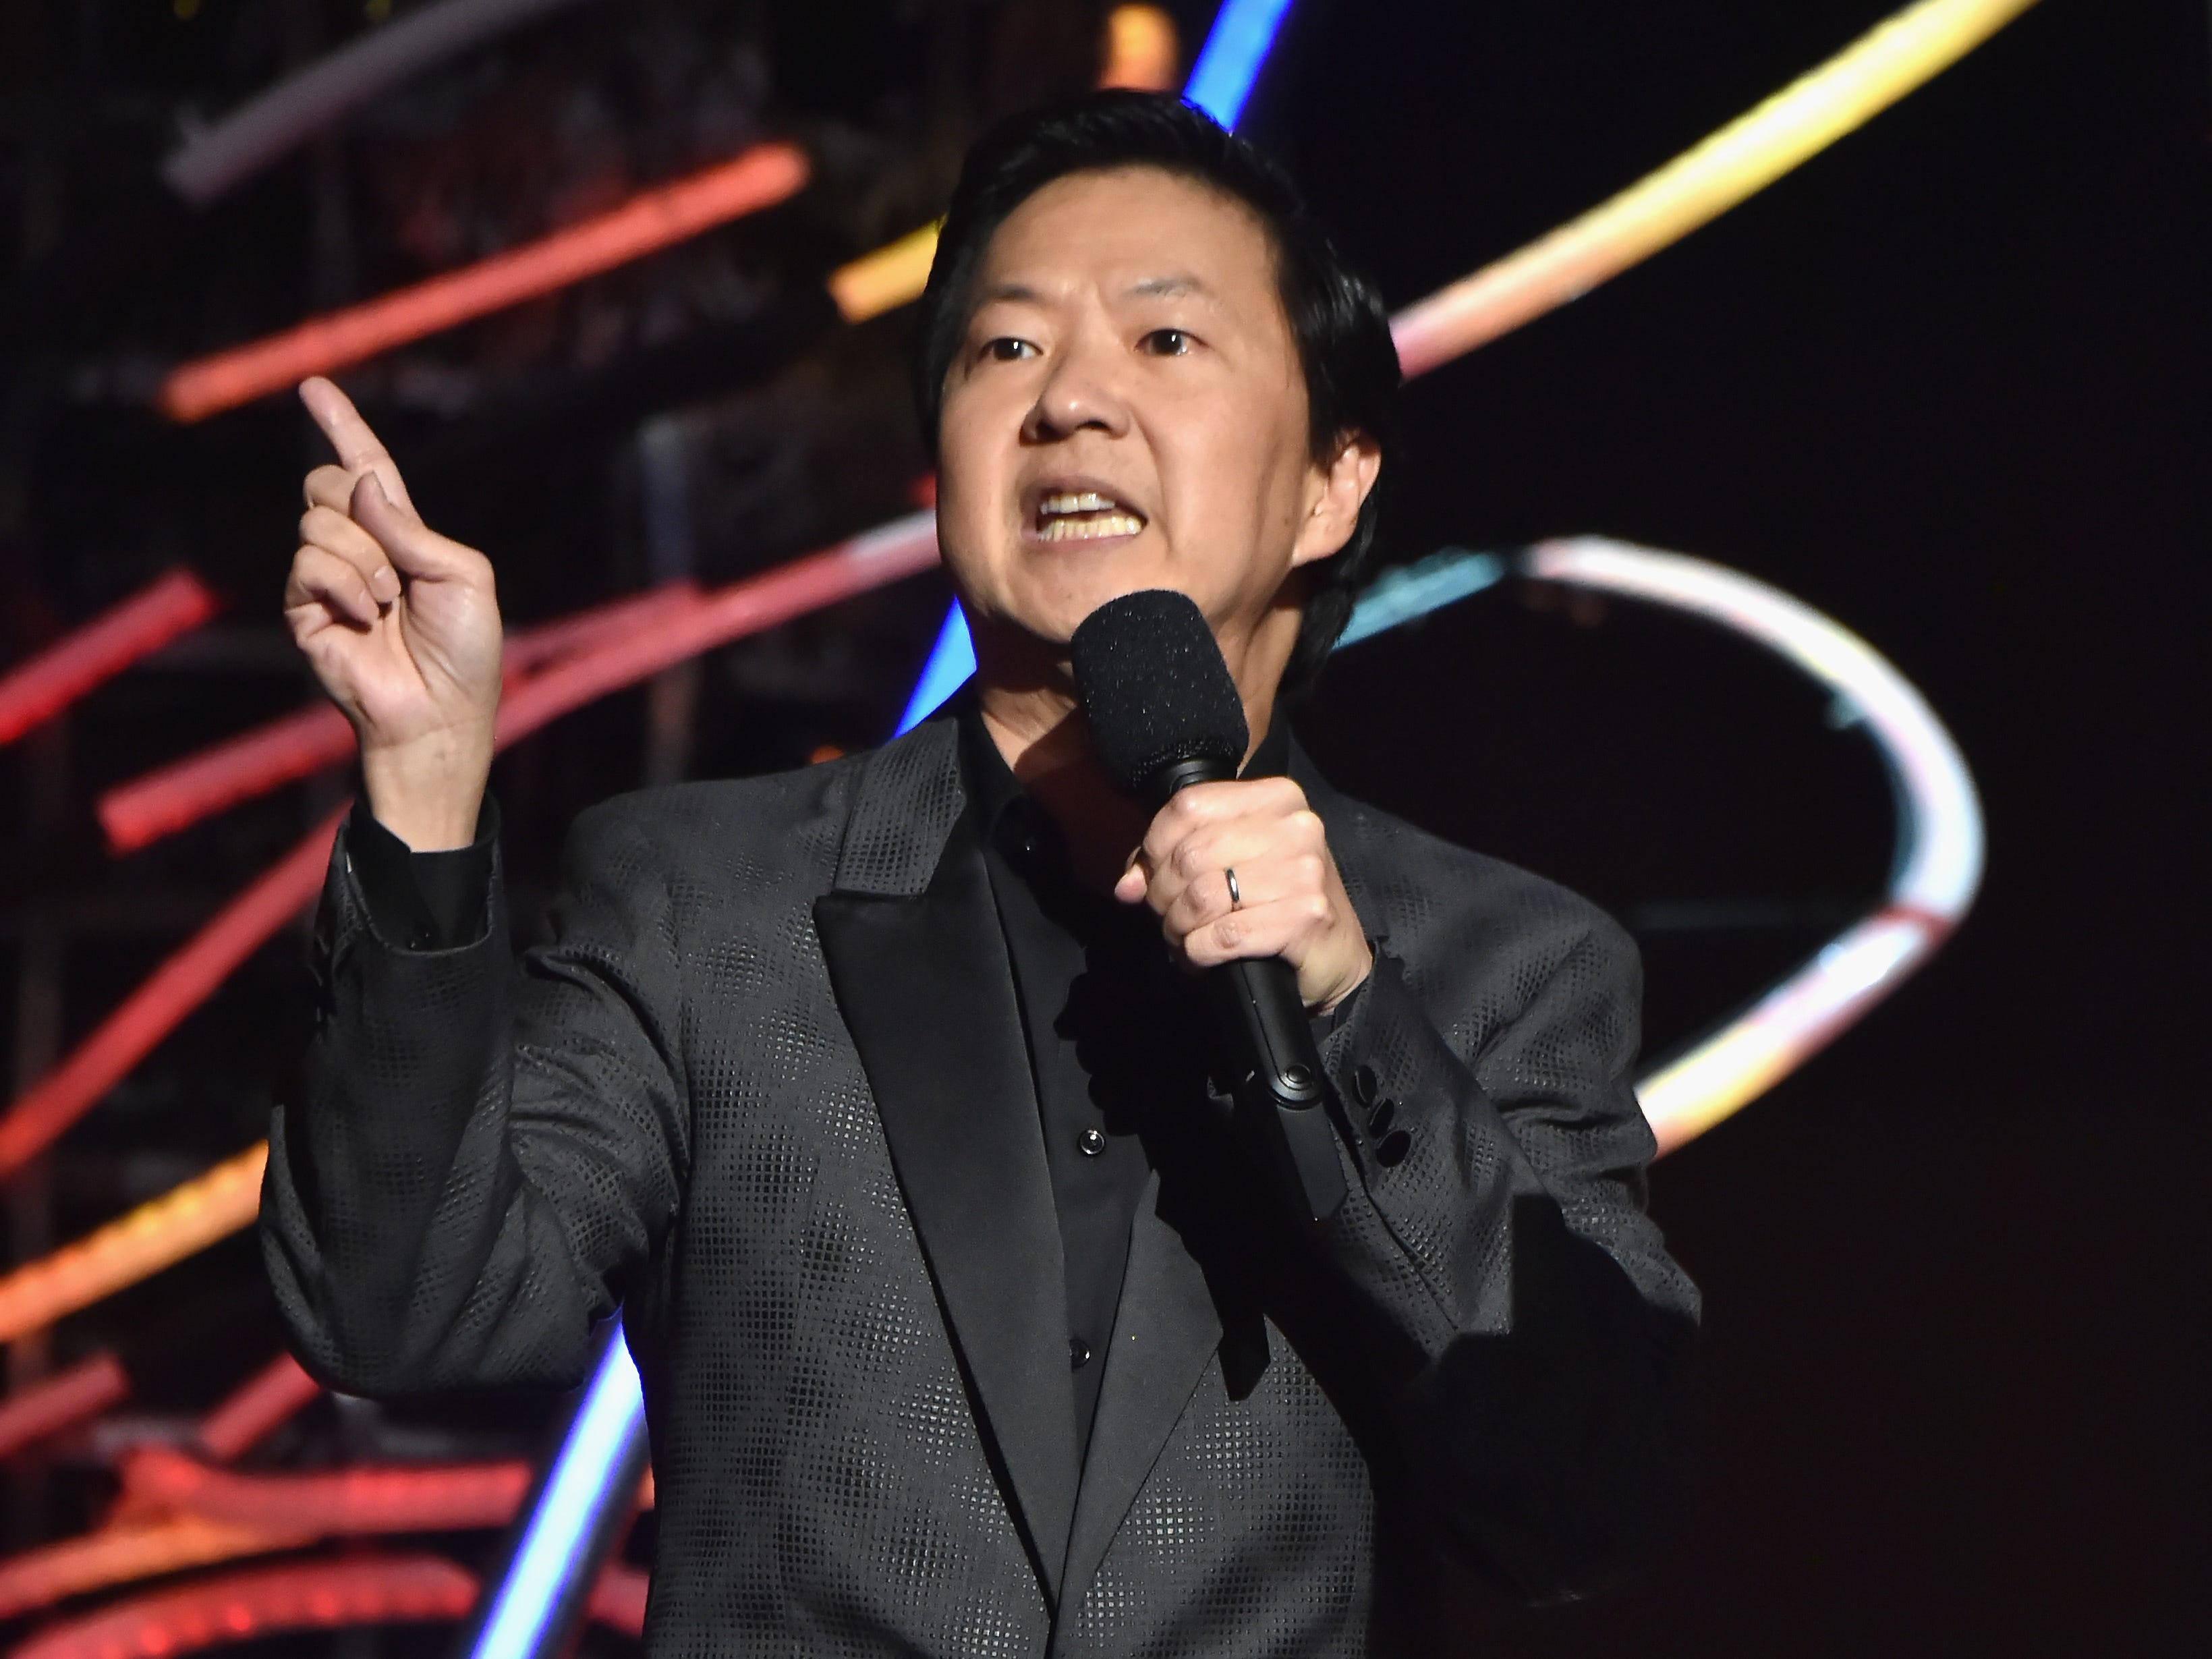 NEW YORK, NY - AUGUST 20:  Ken Jeong speaks onstage during the 2018 MTV Video Music Awards at Radio City Music Hall on August 20, 2018 in New York City.  (Photo by Kevin Mazur/WireImage) ORG XMIT: 775211585 ORIG FILE ID: 1020376446